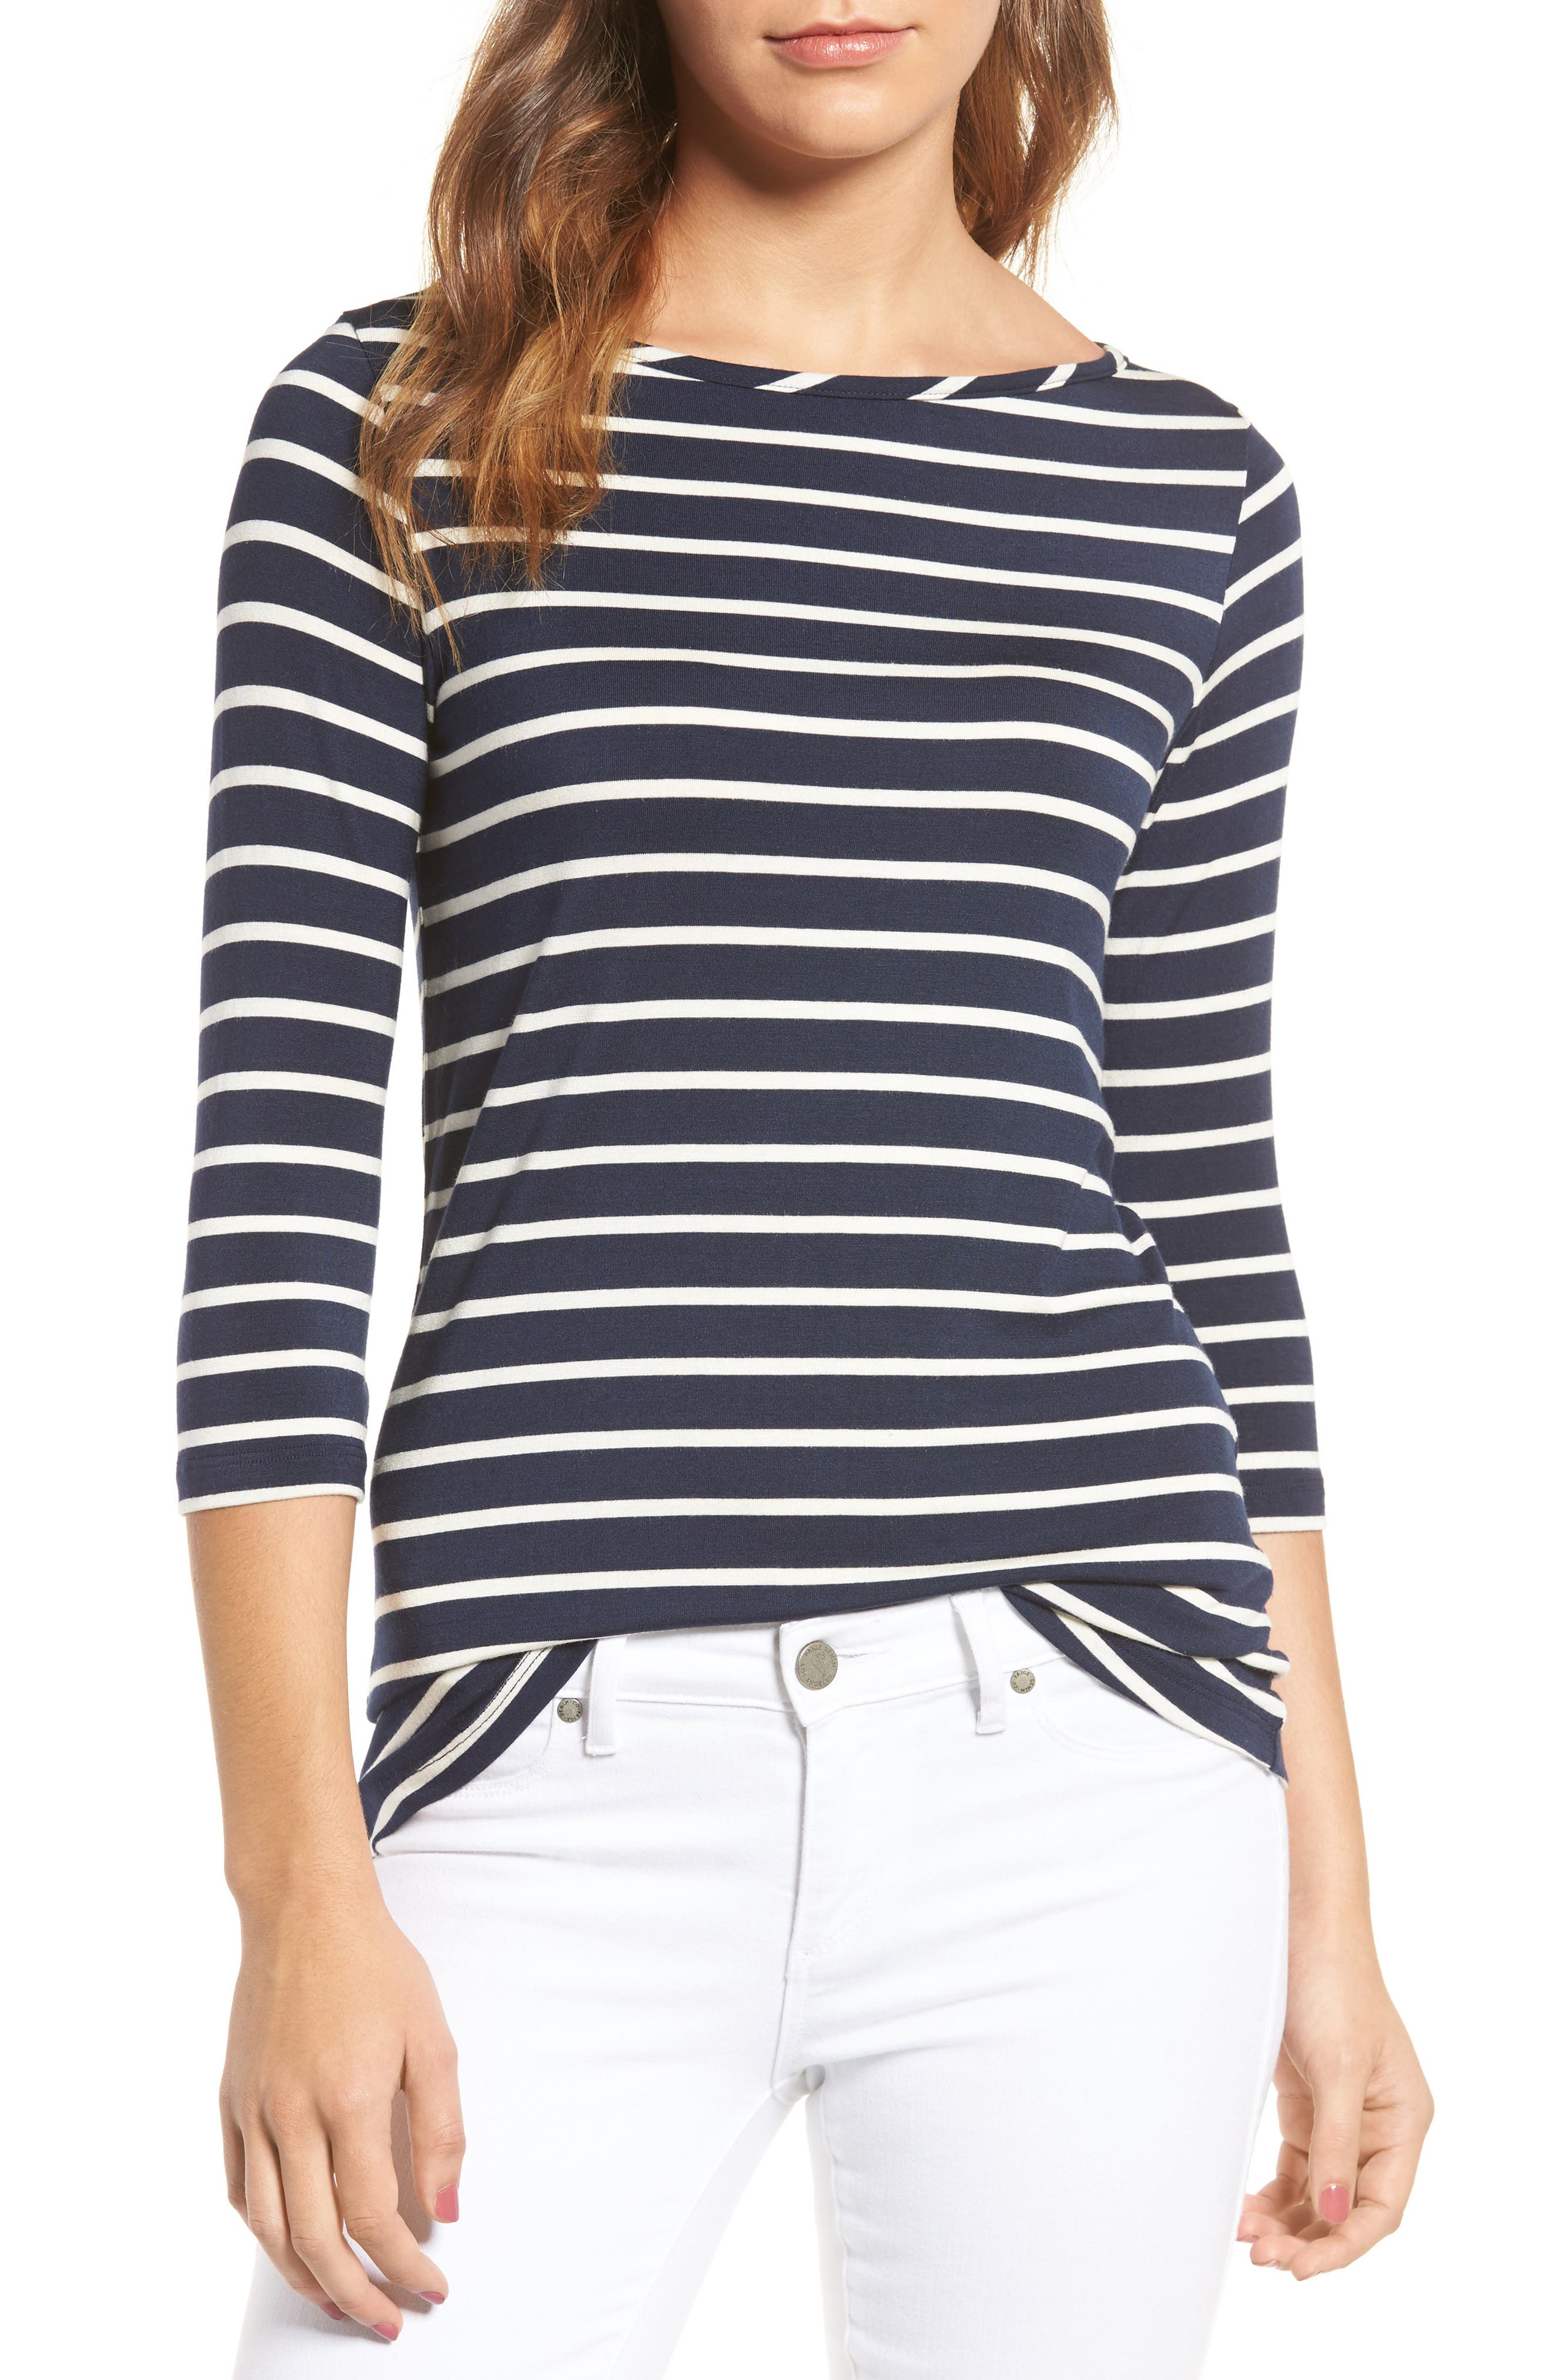 AMOUR VERT Francoise Stretch Jersey Top in Basque Stripe